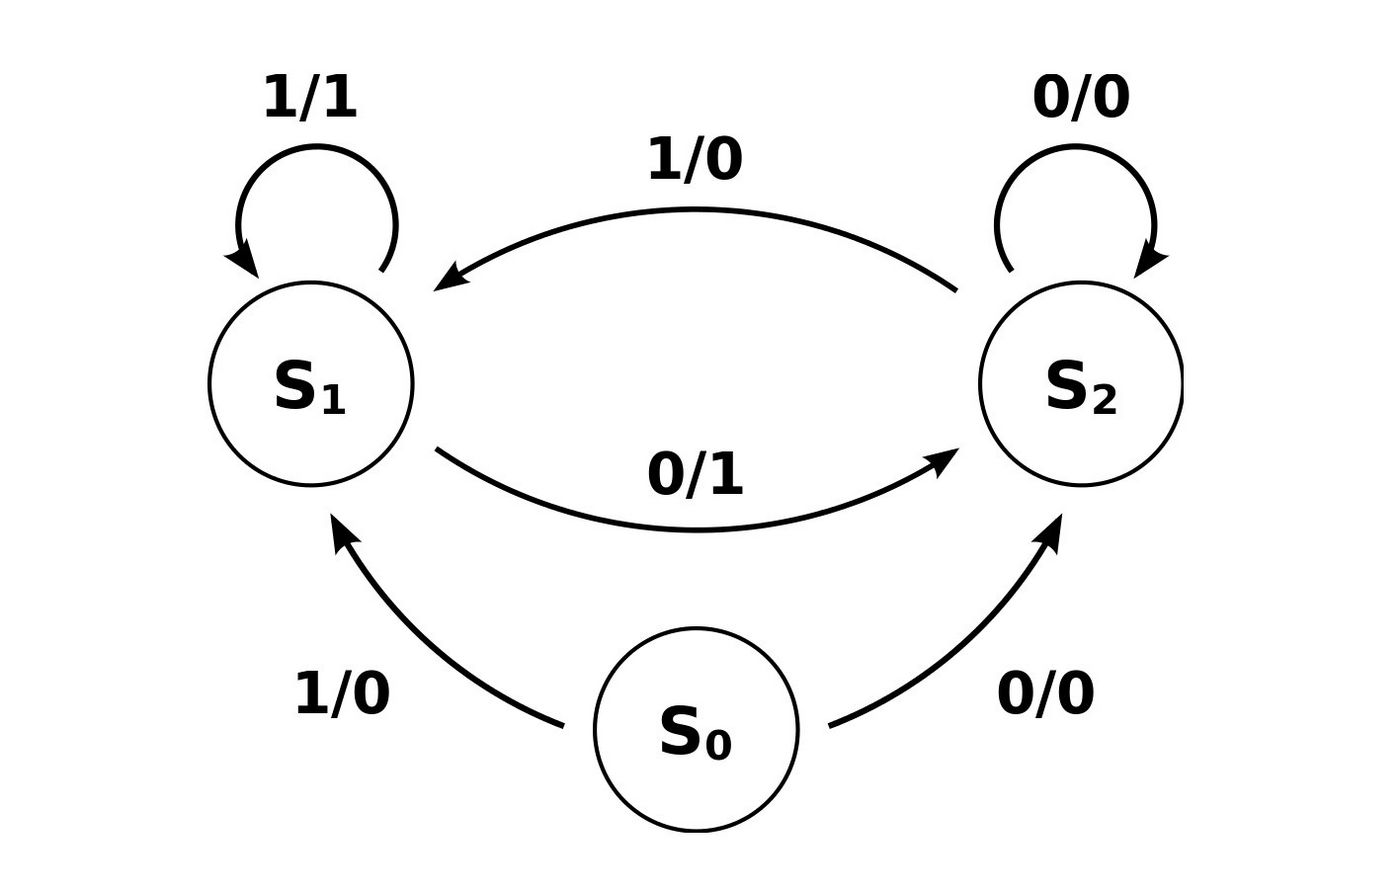 Mealy state diagram